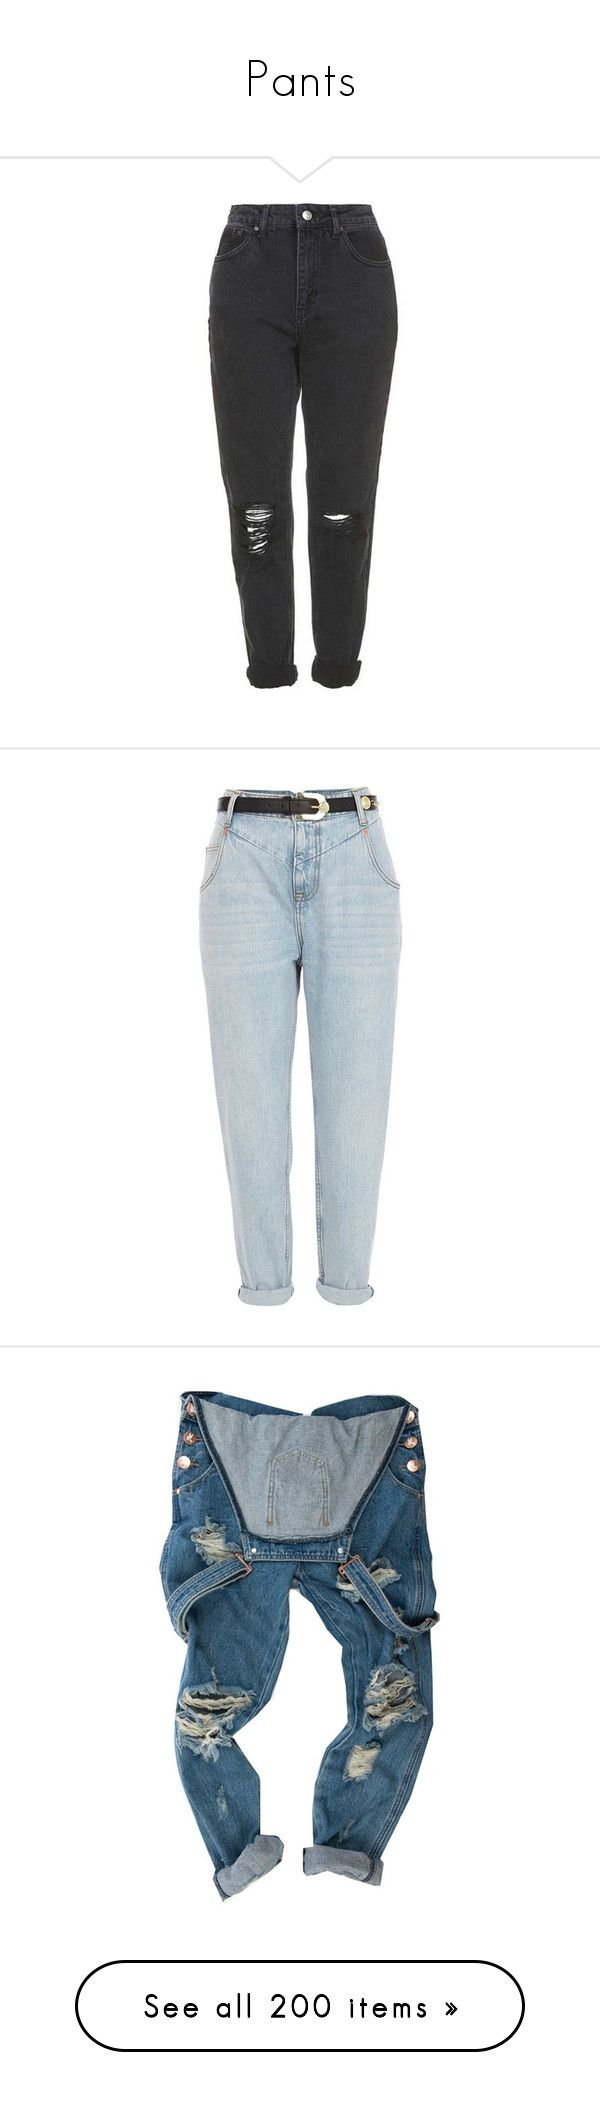 """""""Pants"""" by ginga-ninja ❤ liked on Polyvore featuring jeans, pants, bottoms, calças, sale, river island jeans, zipper jeans, rolled jeans, light wash jeans and rolled up jeans"""